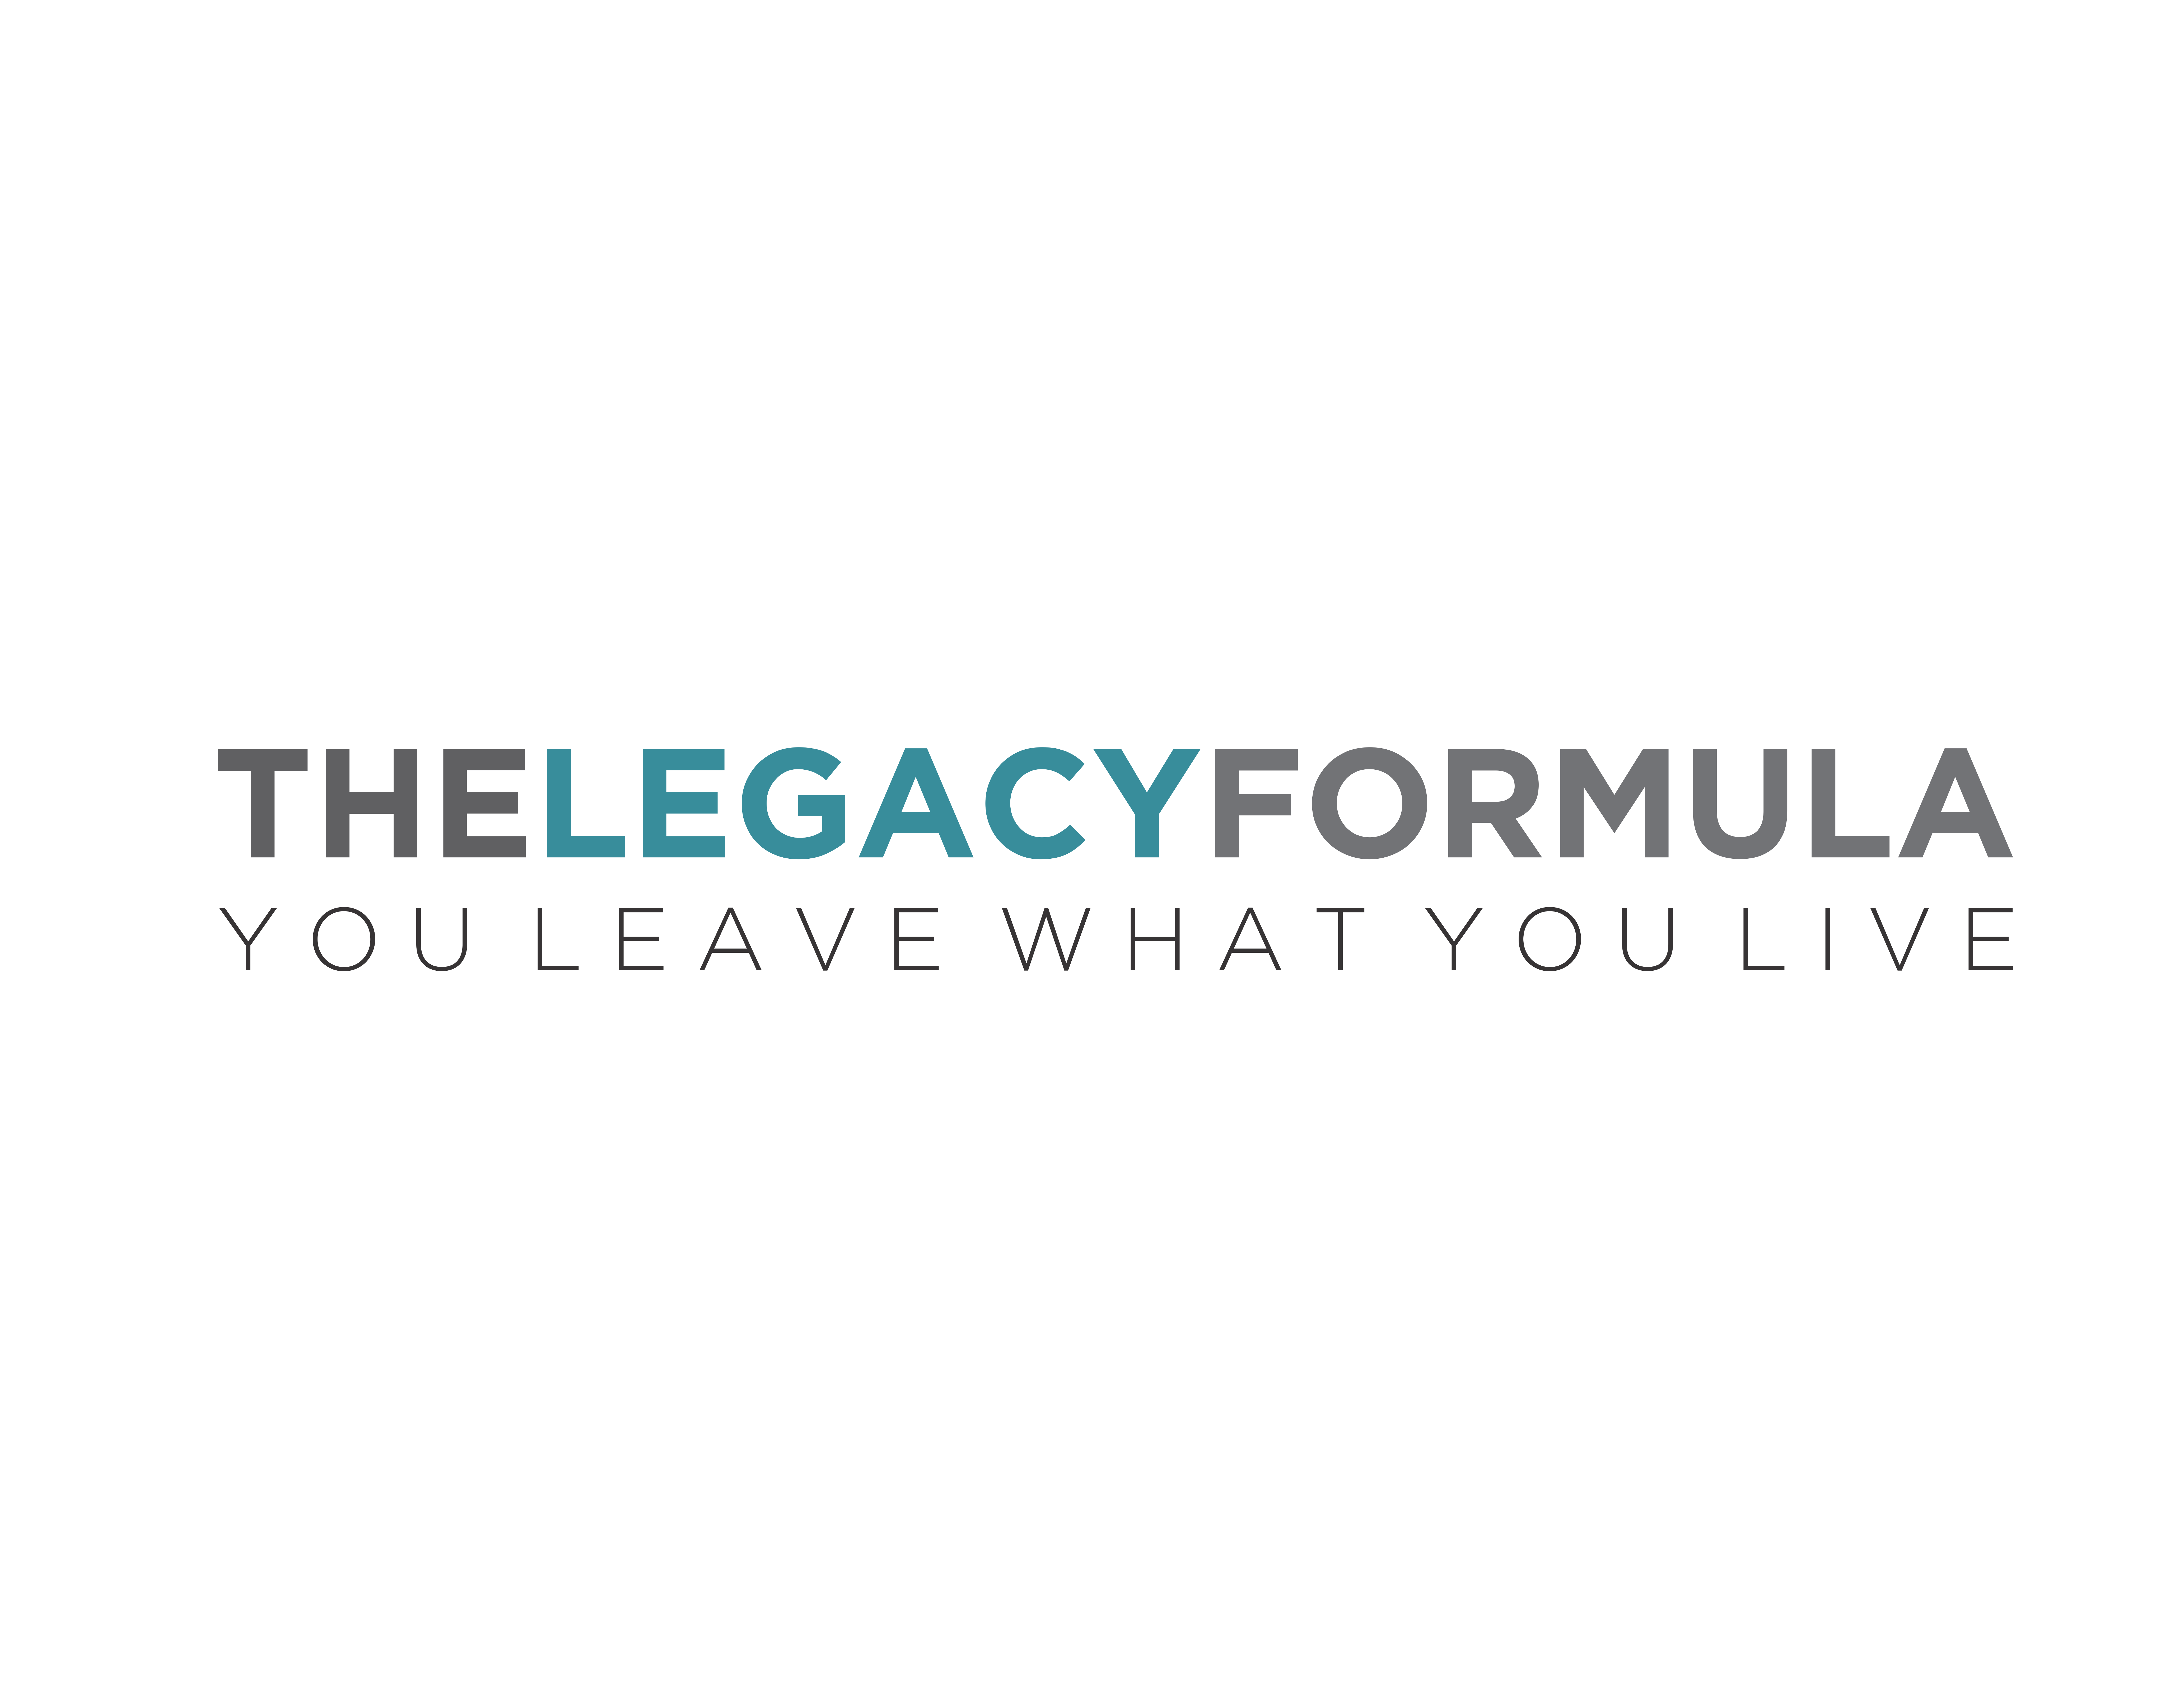 Create a compelling logo that inspires people to live their legacy